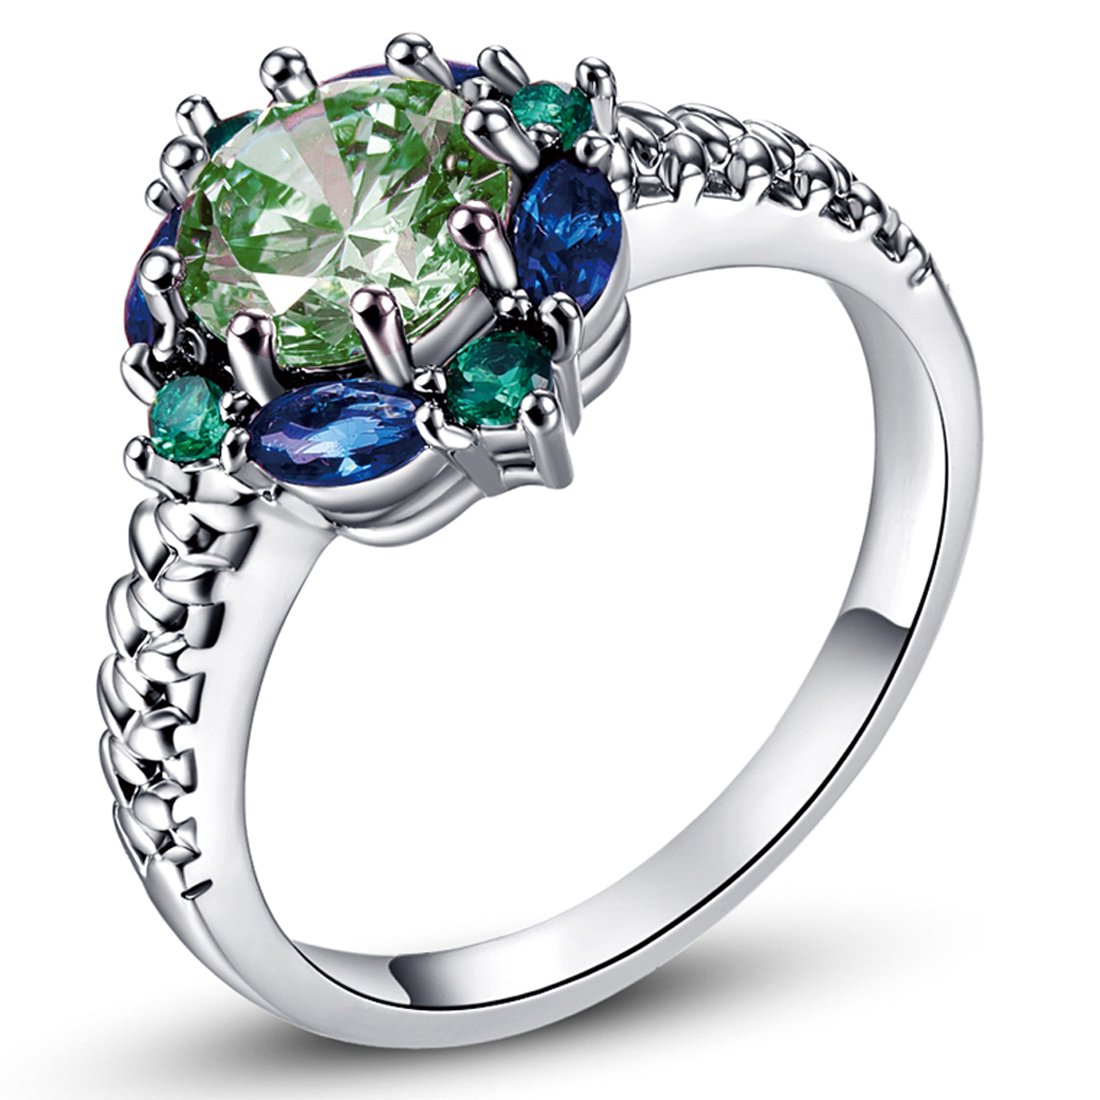 Psiroy 925 Sterling Silver Green Amethyst Filled Ring Flower Shaped Band Size 7